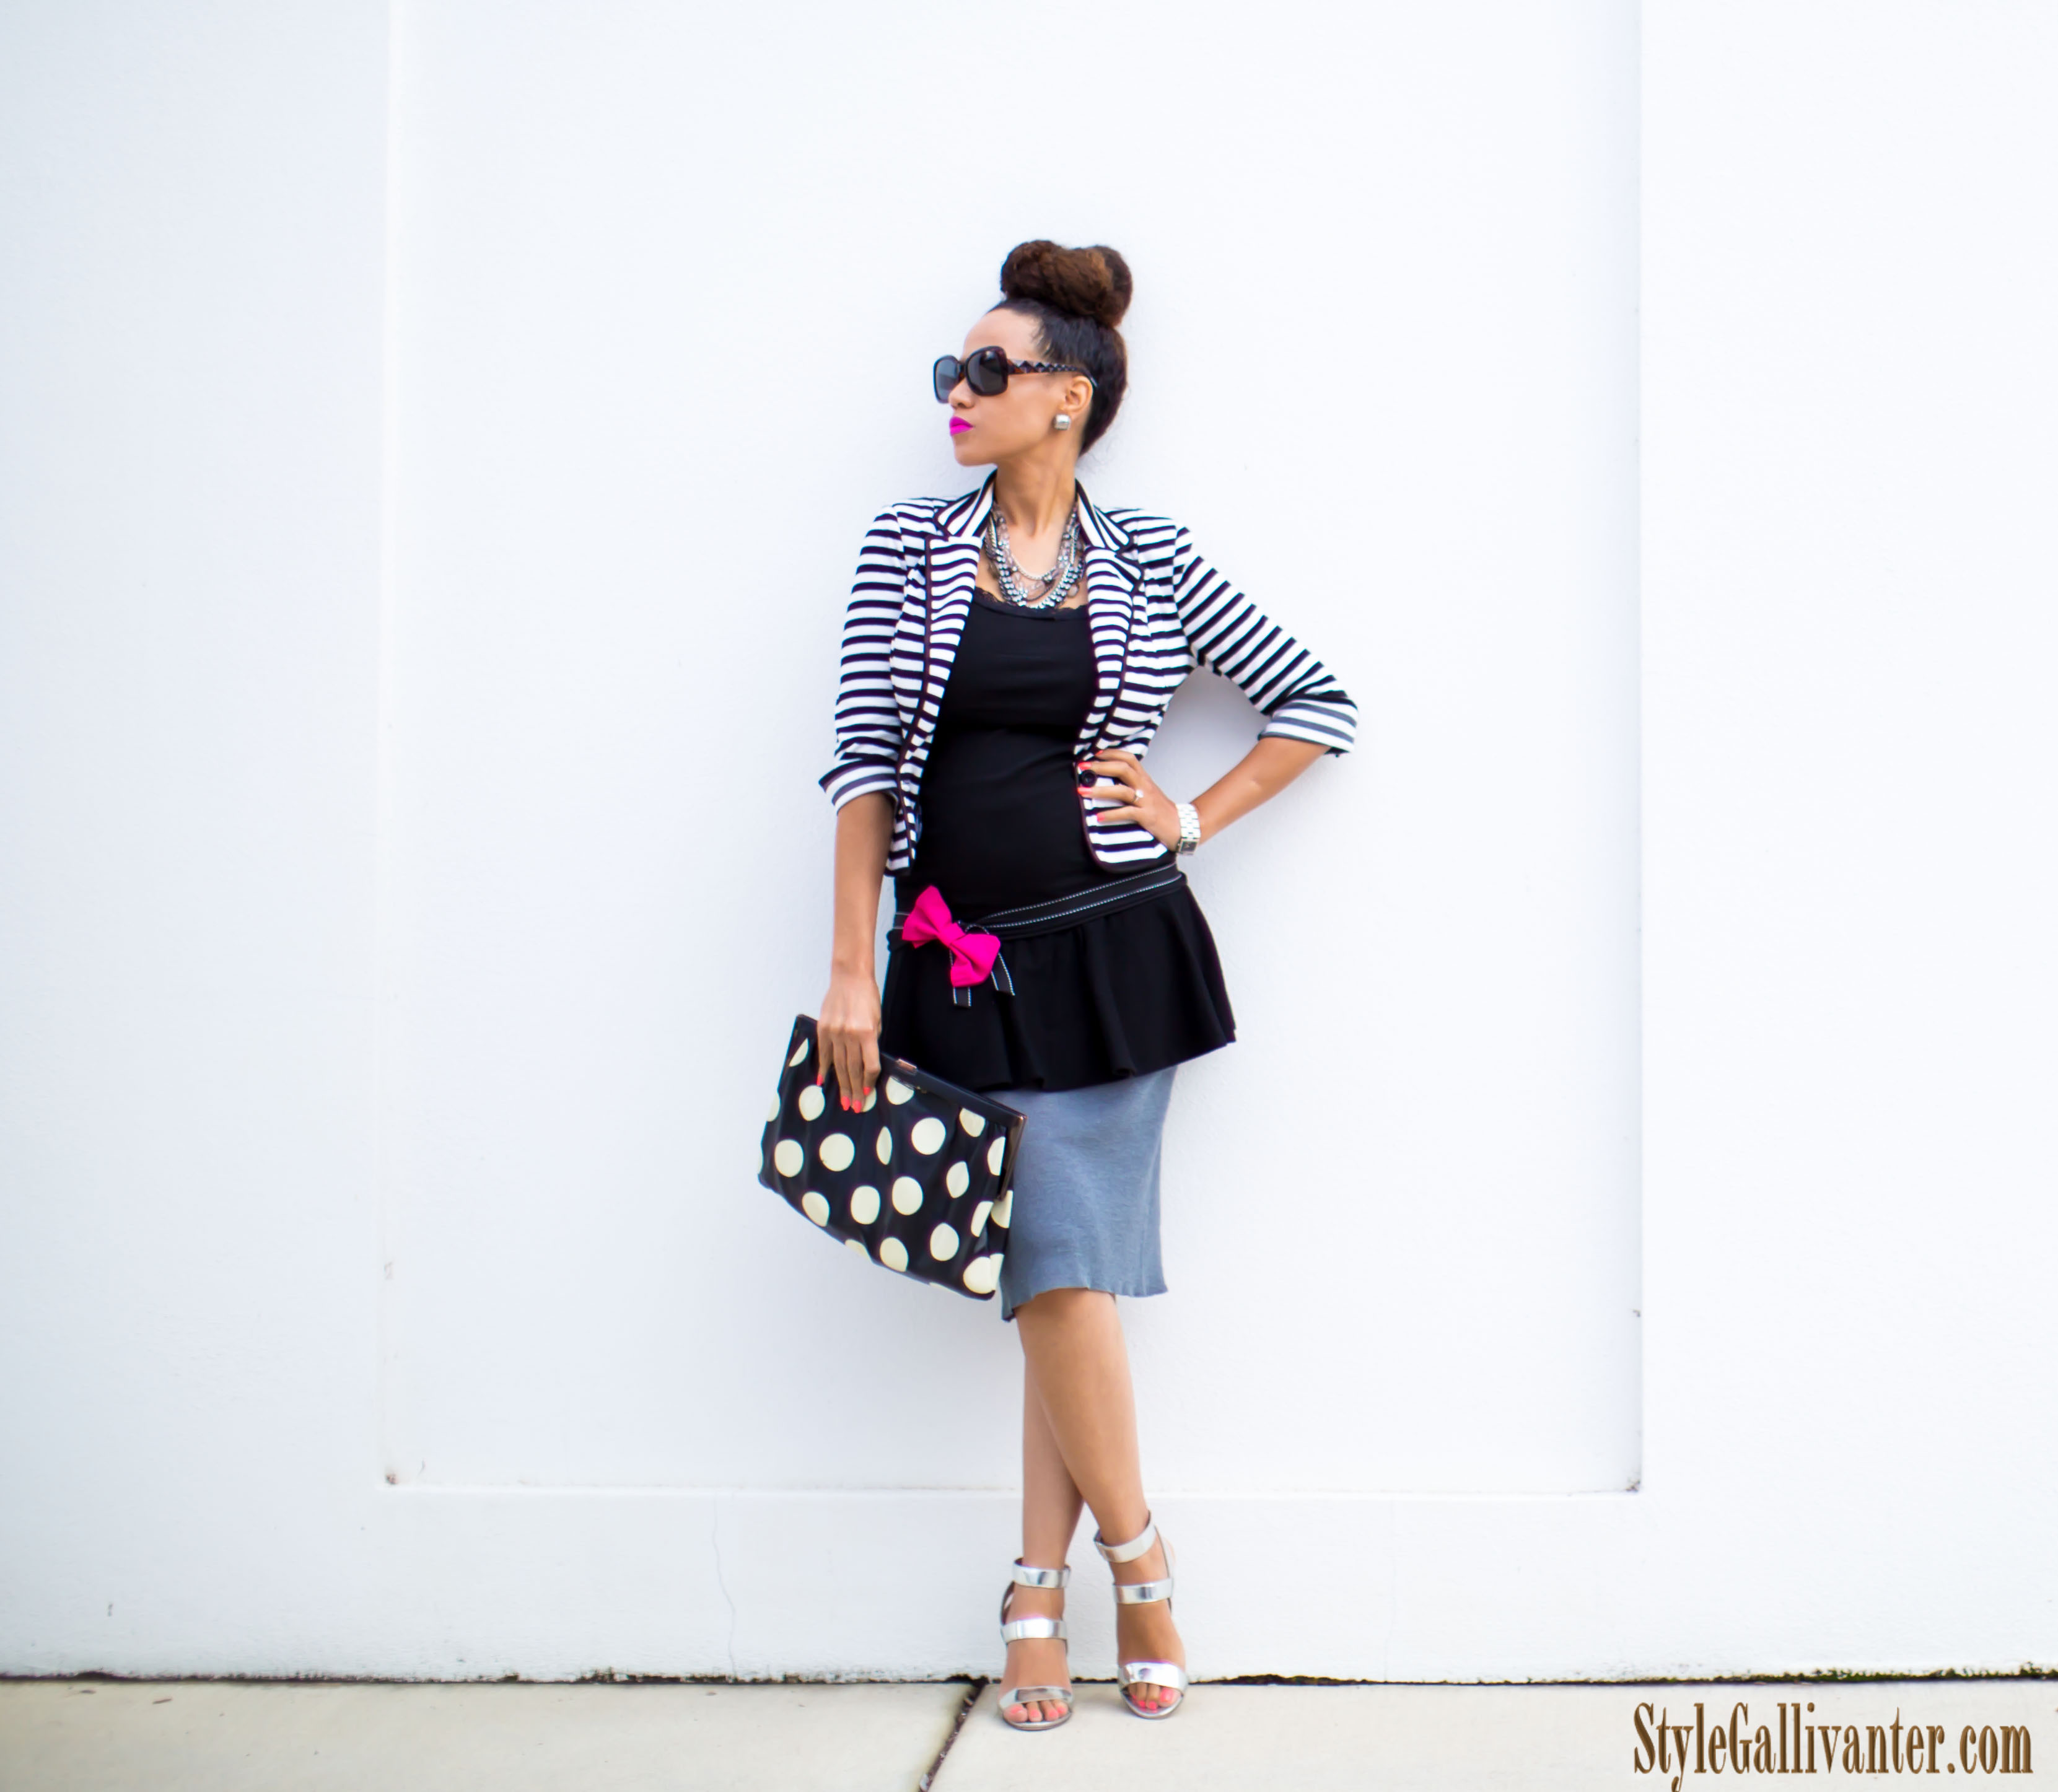 how-to-rock-pregnancy-at-work_nautical-trends-2014_best-new-personal-style-blogs-2014_best-personal-style-bloggers-melbourne-canberra_best-new-pregnant-bloggers-australia-melbourne_best-bump-models-5